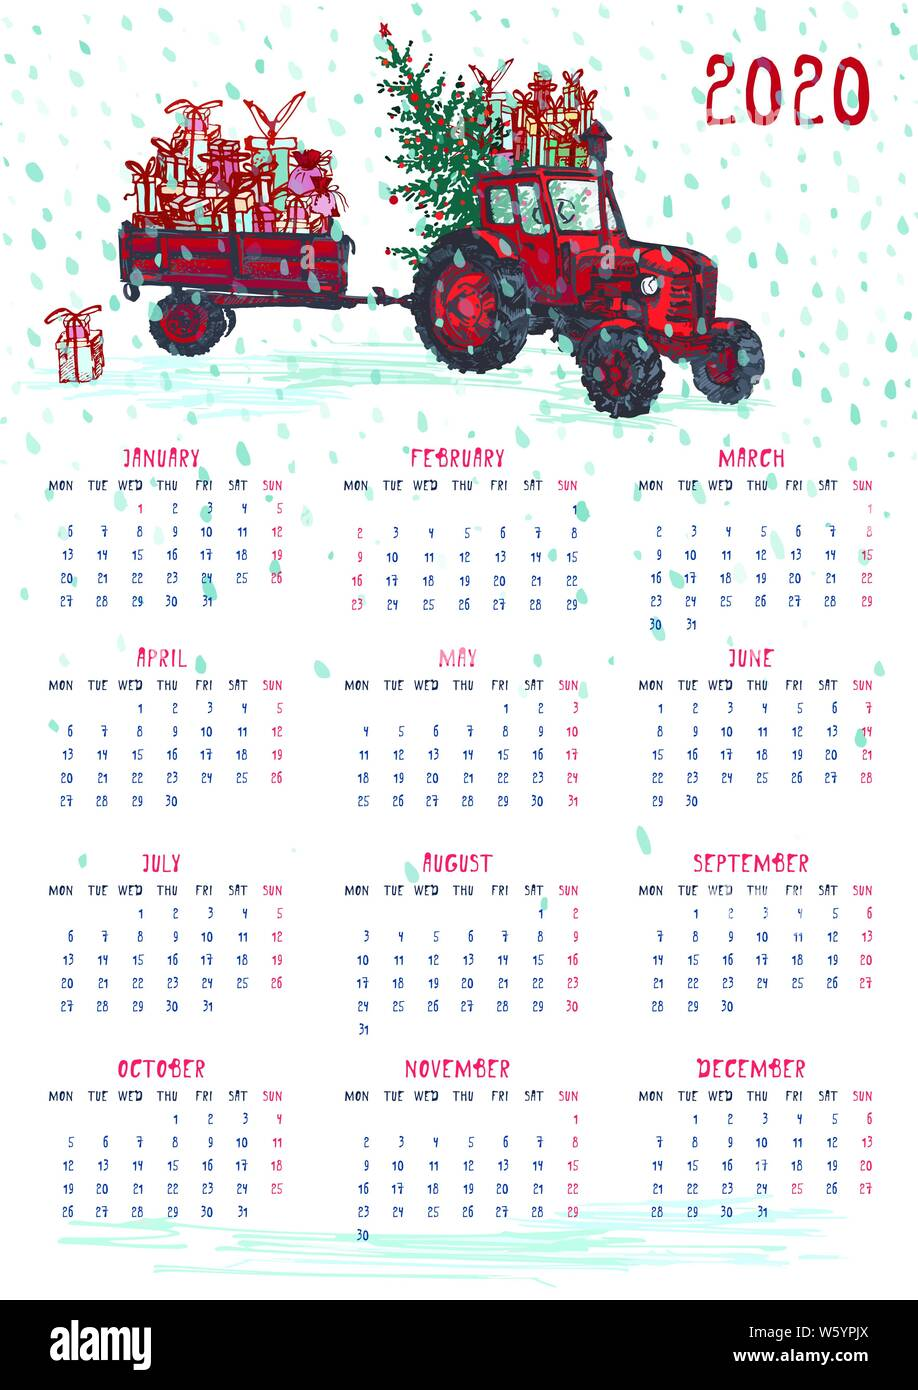 2020 Calendar planner whith red christmas car, new year tree and